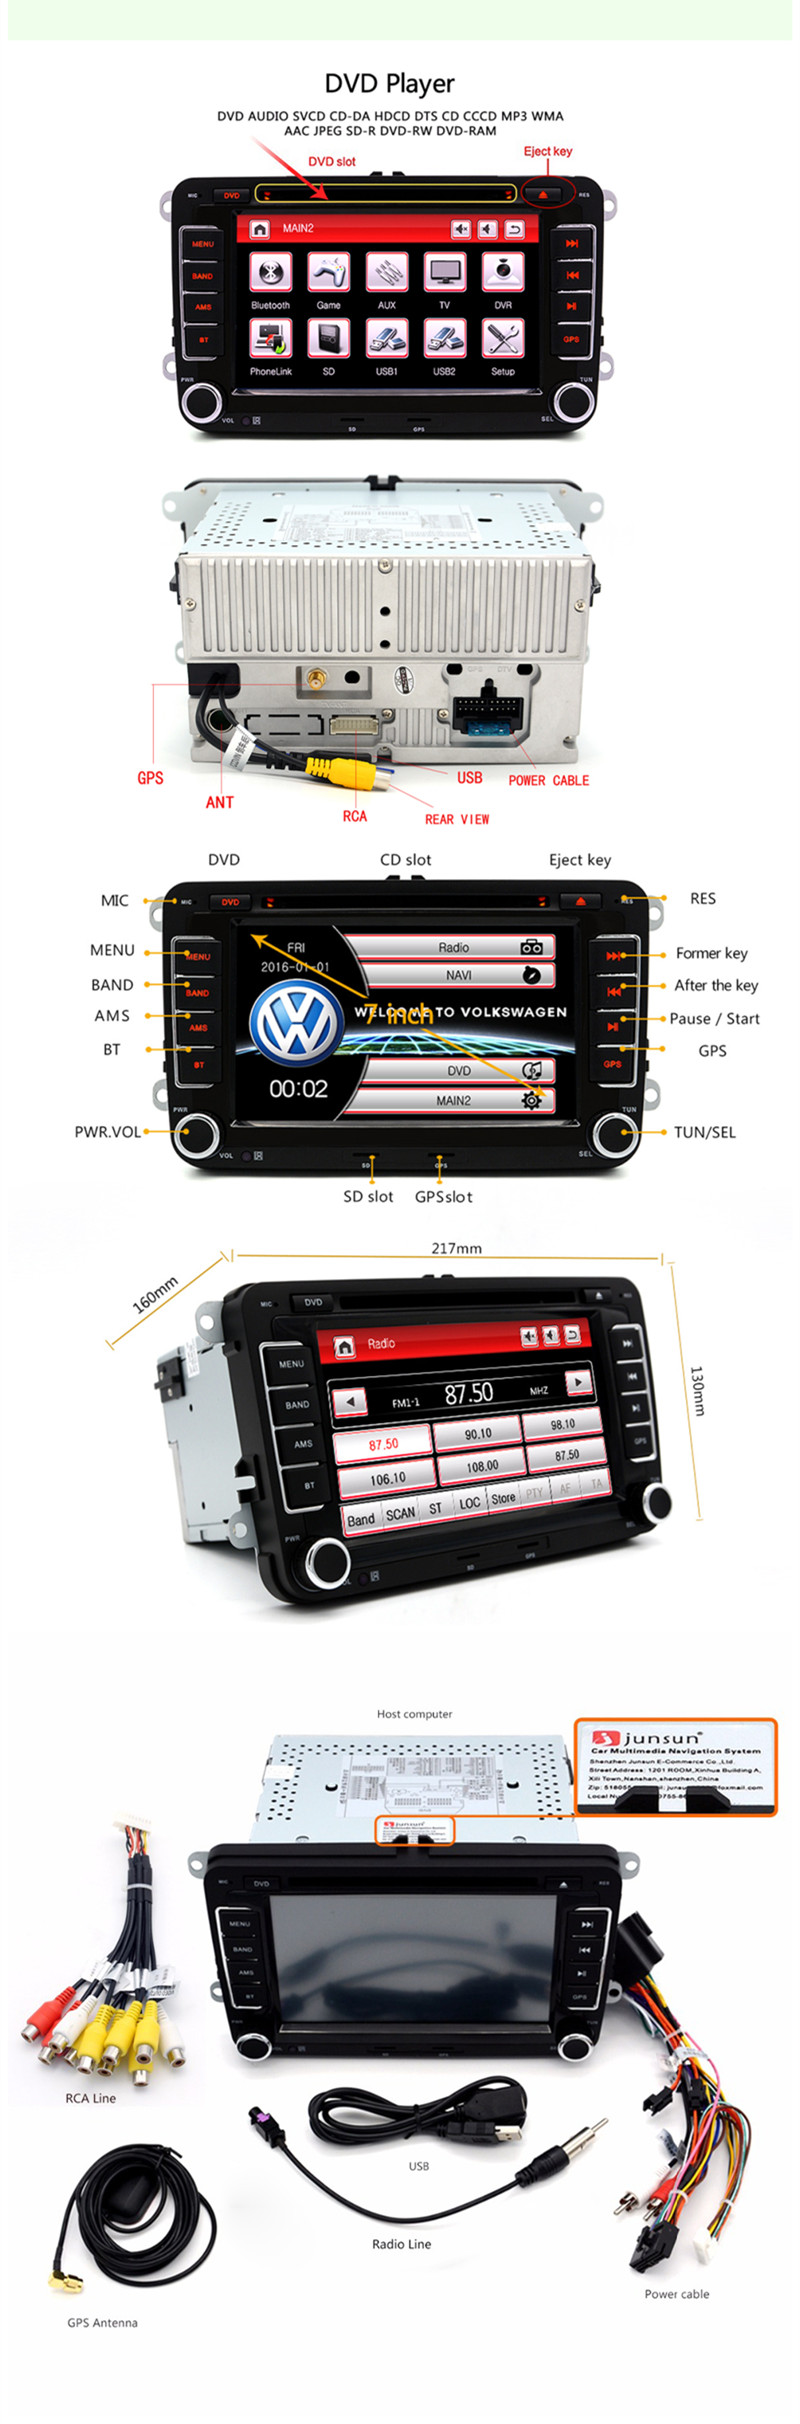 Junsun 7 Inch 2 Din Car DVD GPS Radio Player for VW Golf 5 6 Touran Passat B6 Sharan Jetta Polo